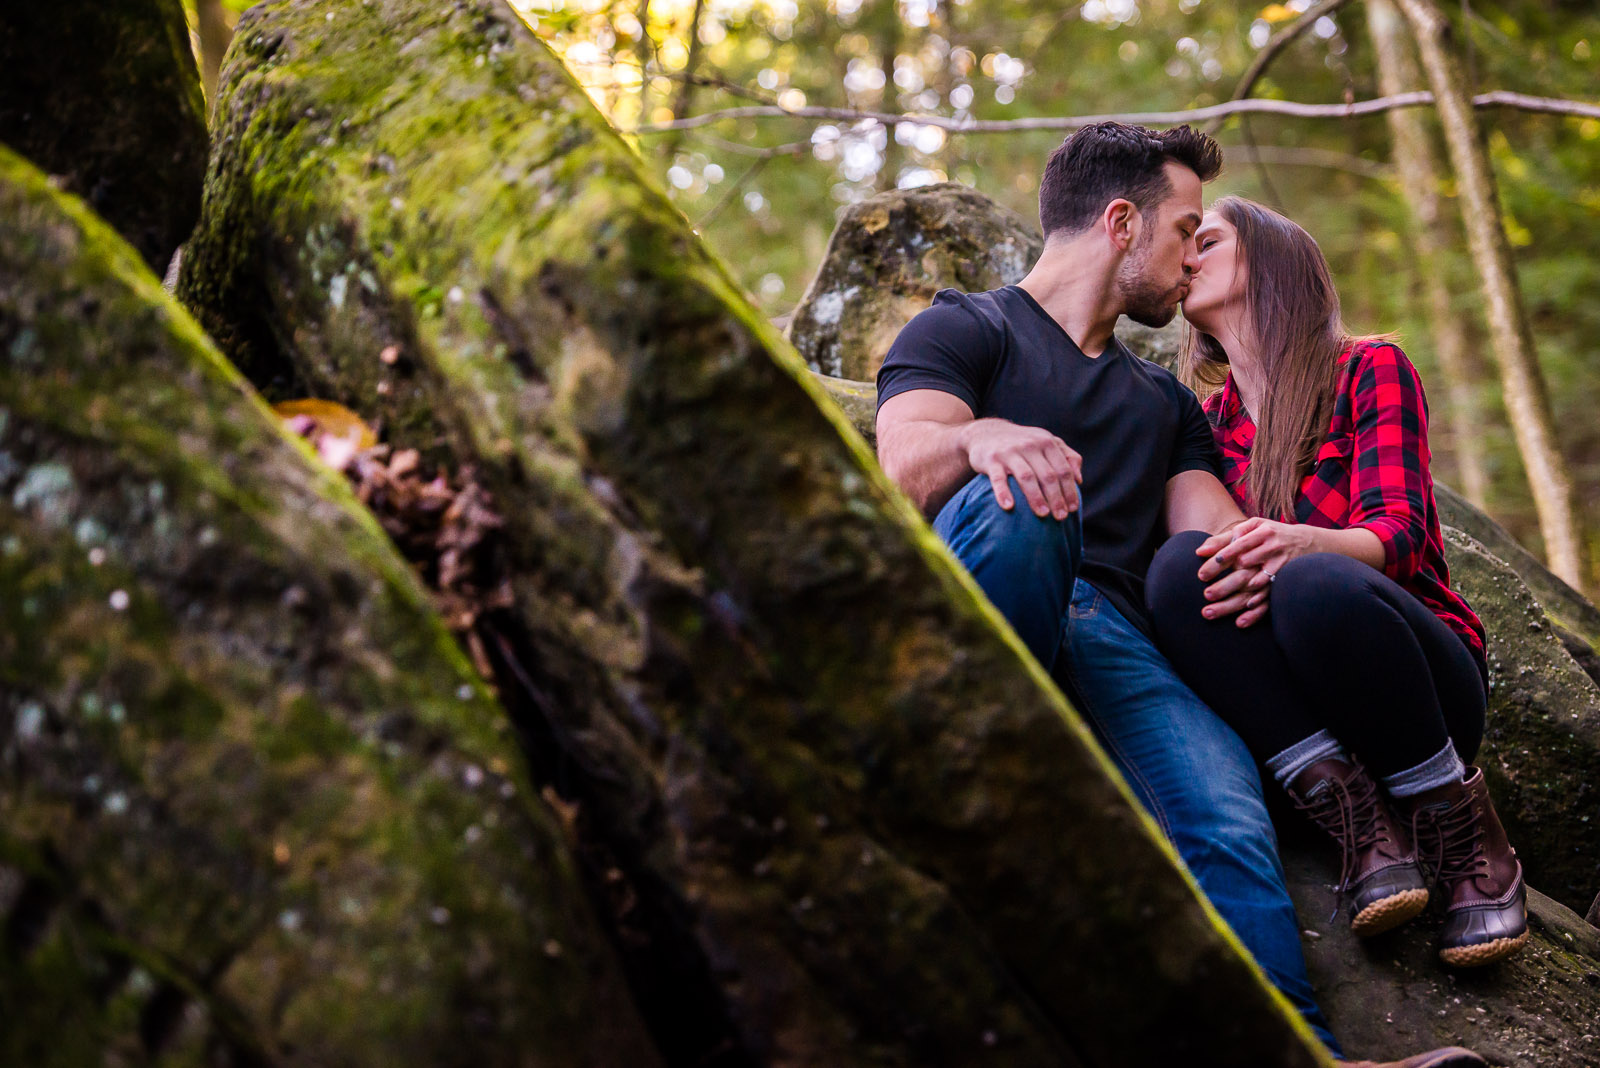 Eric_and_Christy_Photography_Blog_Stephanie_Nick_Engagement-6